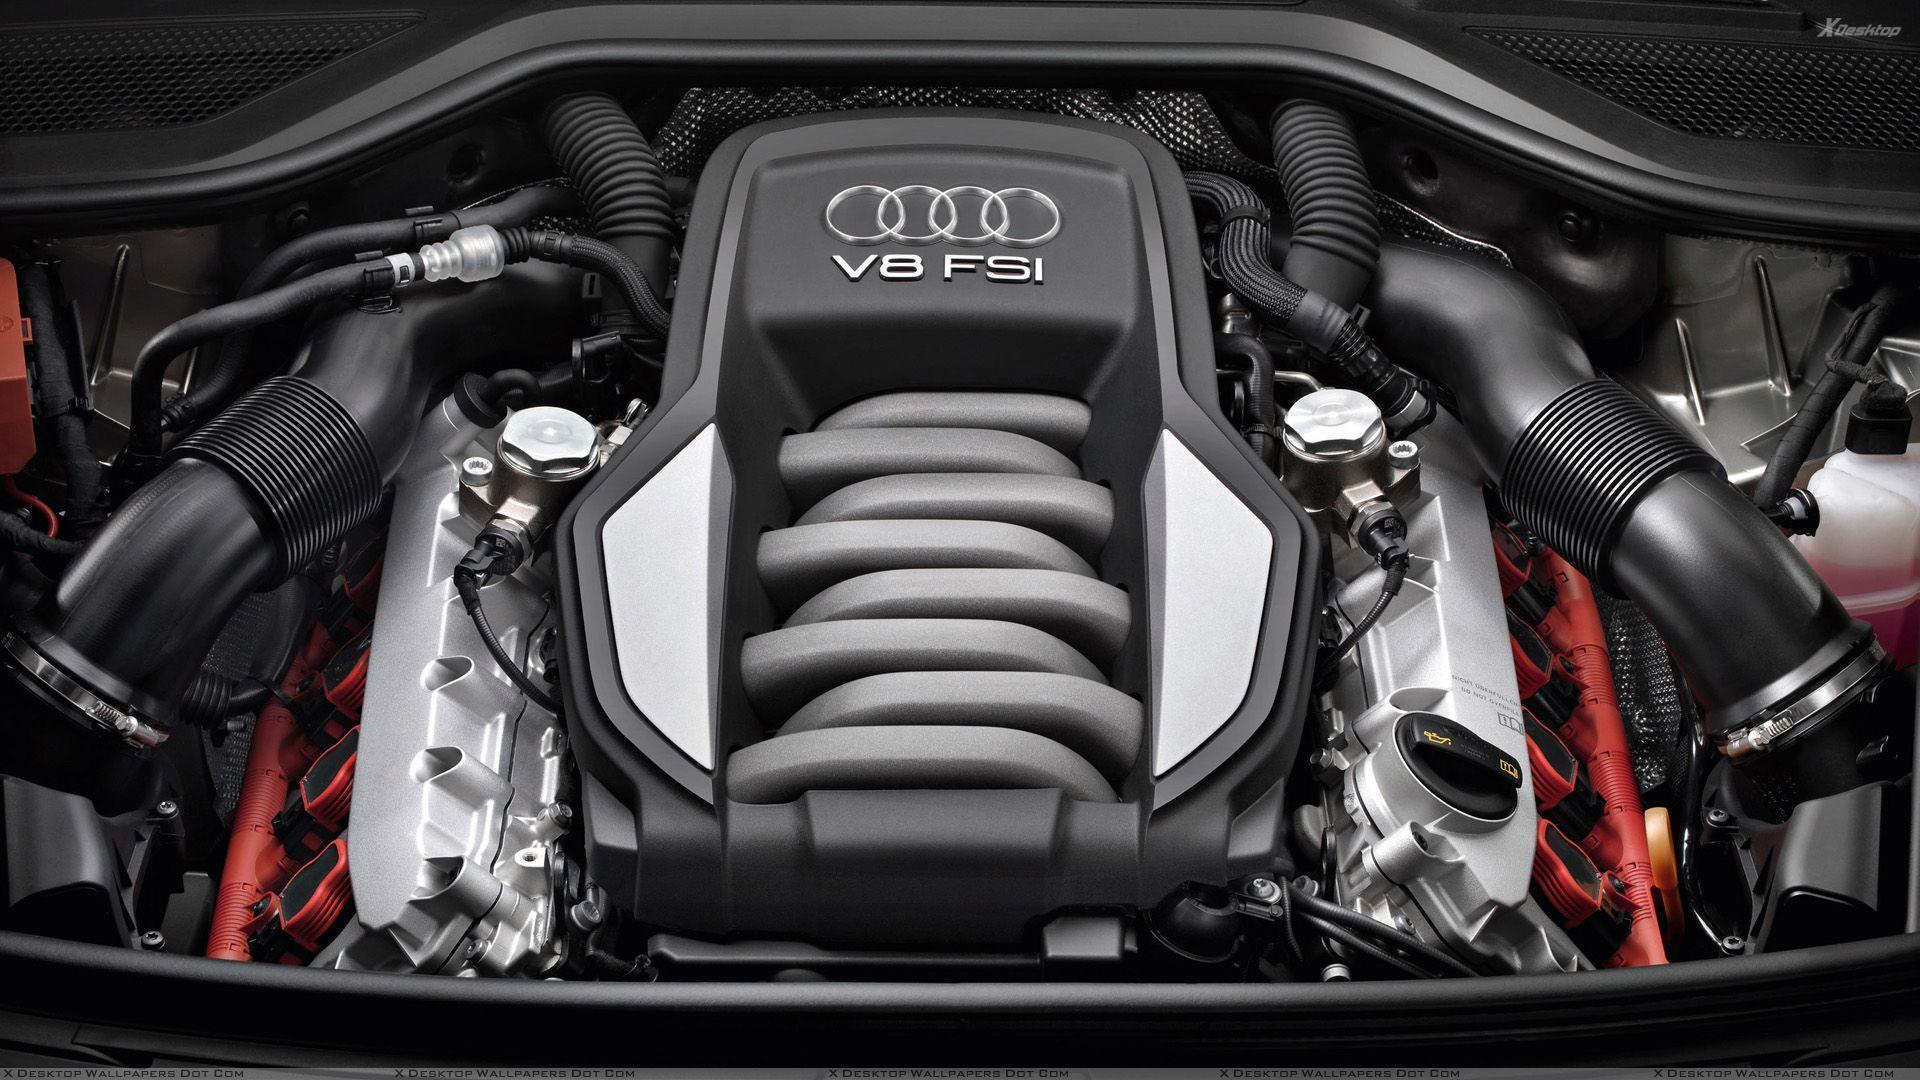 engine wallpapers audi a8 engines hd cars luxury cave tdi vehicle quattro wallpapercave